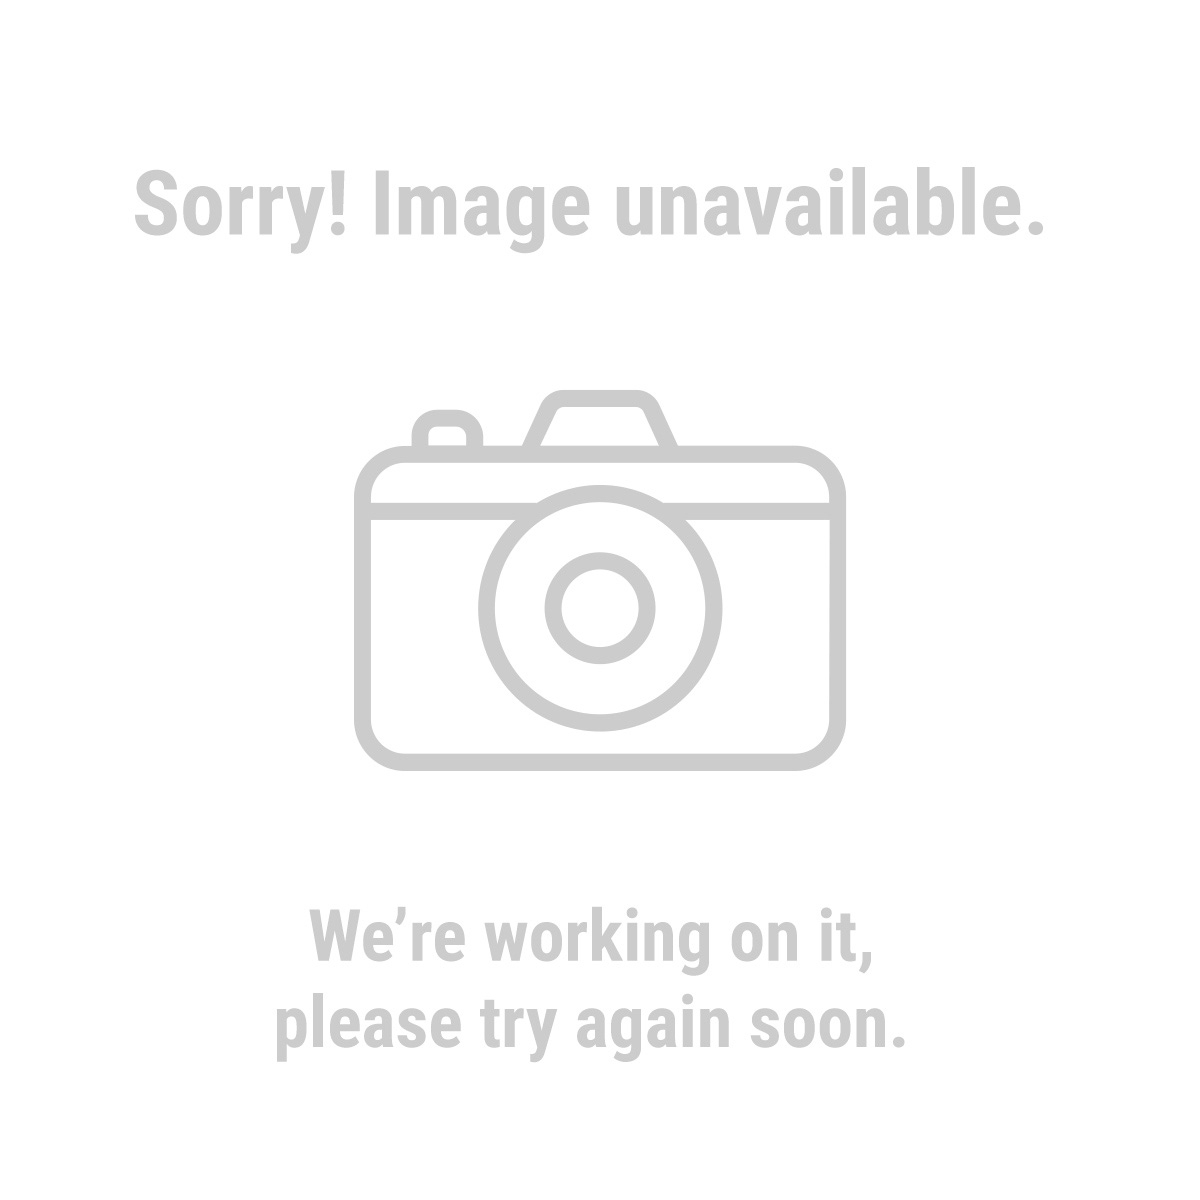 Central Machinery® 31810 13 Gallon Industrial Portable Dust Collector